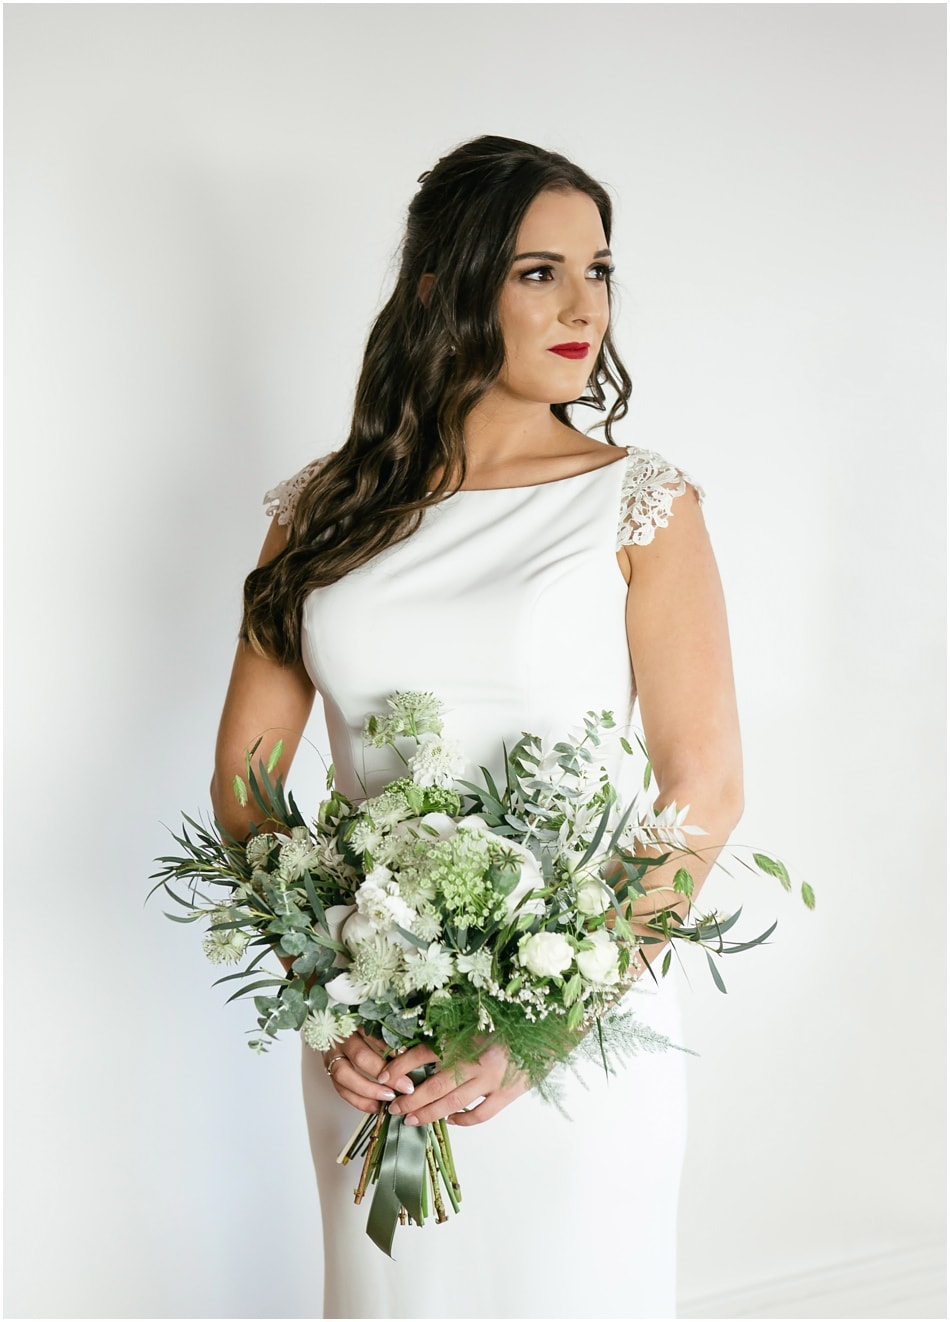 Modern wedding photography at Hope Street Hotel; Portrait of a Bride wearing red lipstick